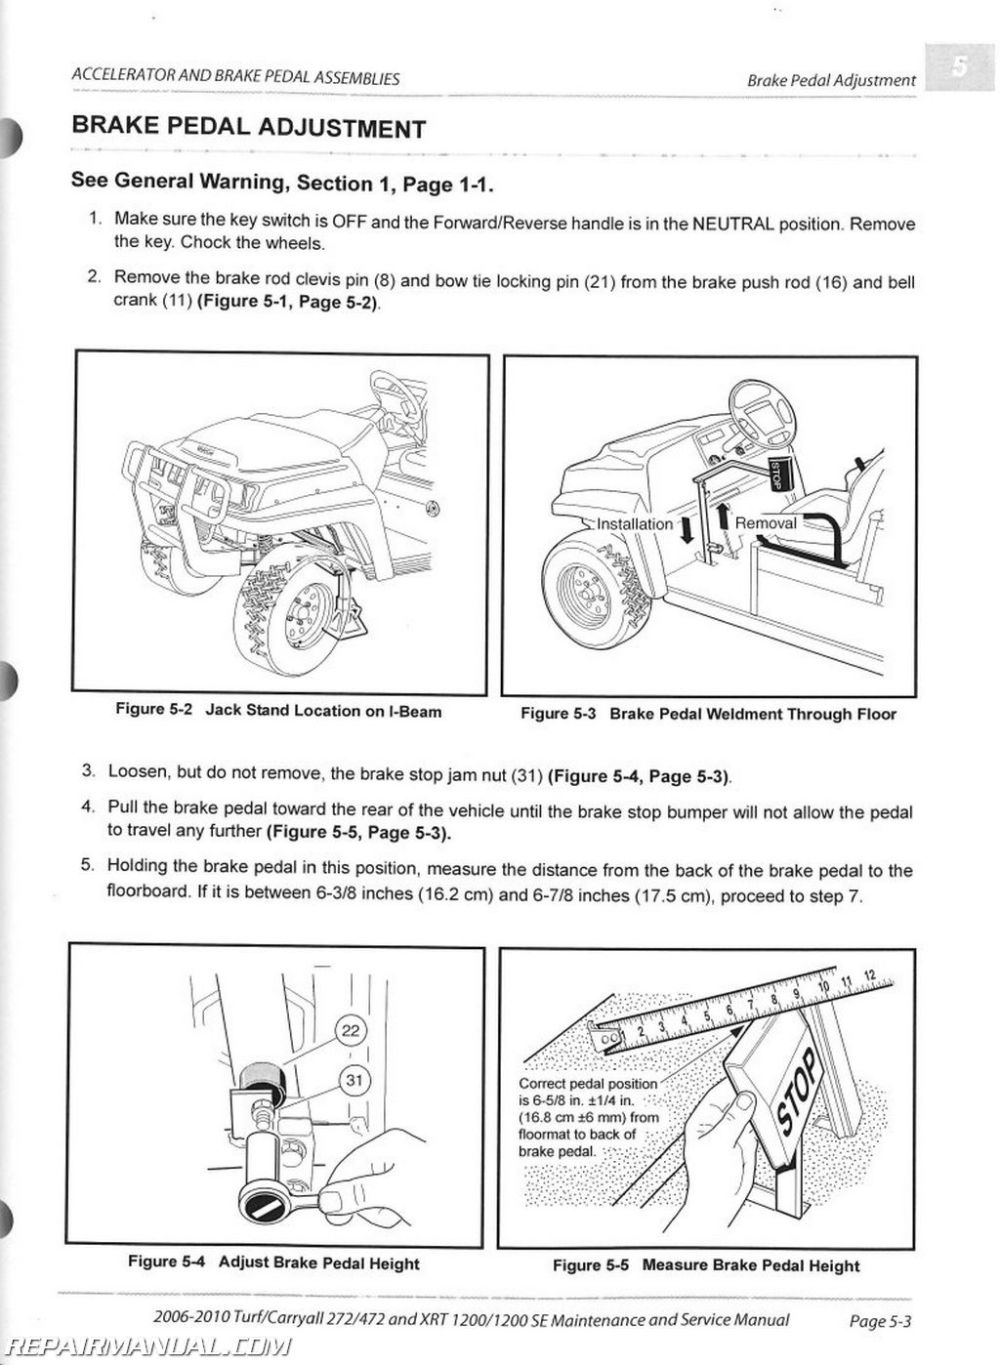 medium resolution of 2006 2010 club car turf carryall 272 472 xrt1200 se turf 272 1997 club car wiring diagram club car carryall 272 wiring diagram